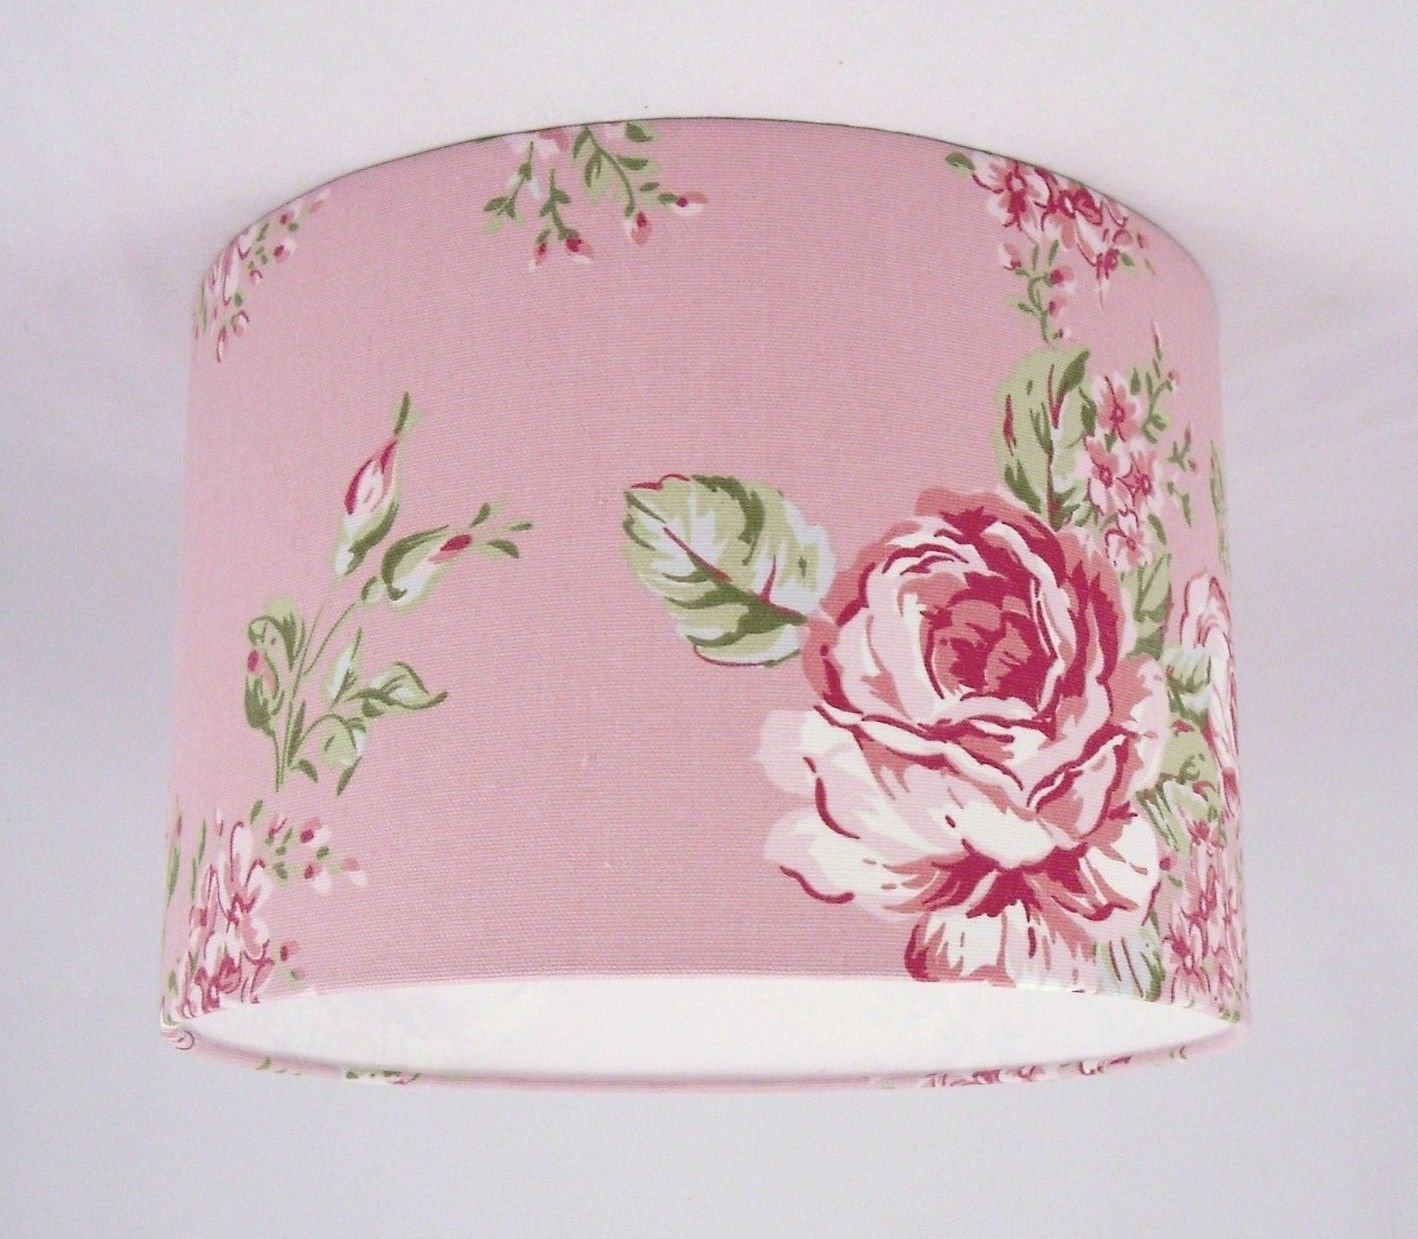 11 lampshade handmade in uk pink floral shabby chic vintage 11 lampshade handmade in uk pink floral shabby chic vintage lampshade amazon lighting aloadofball Images